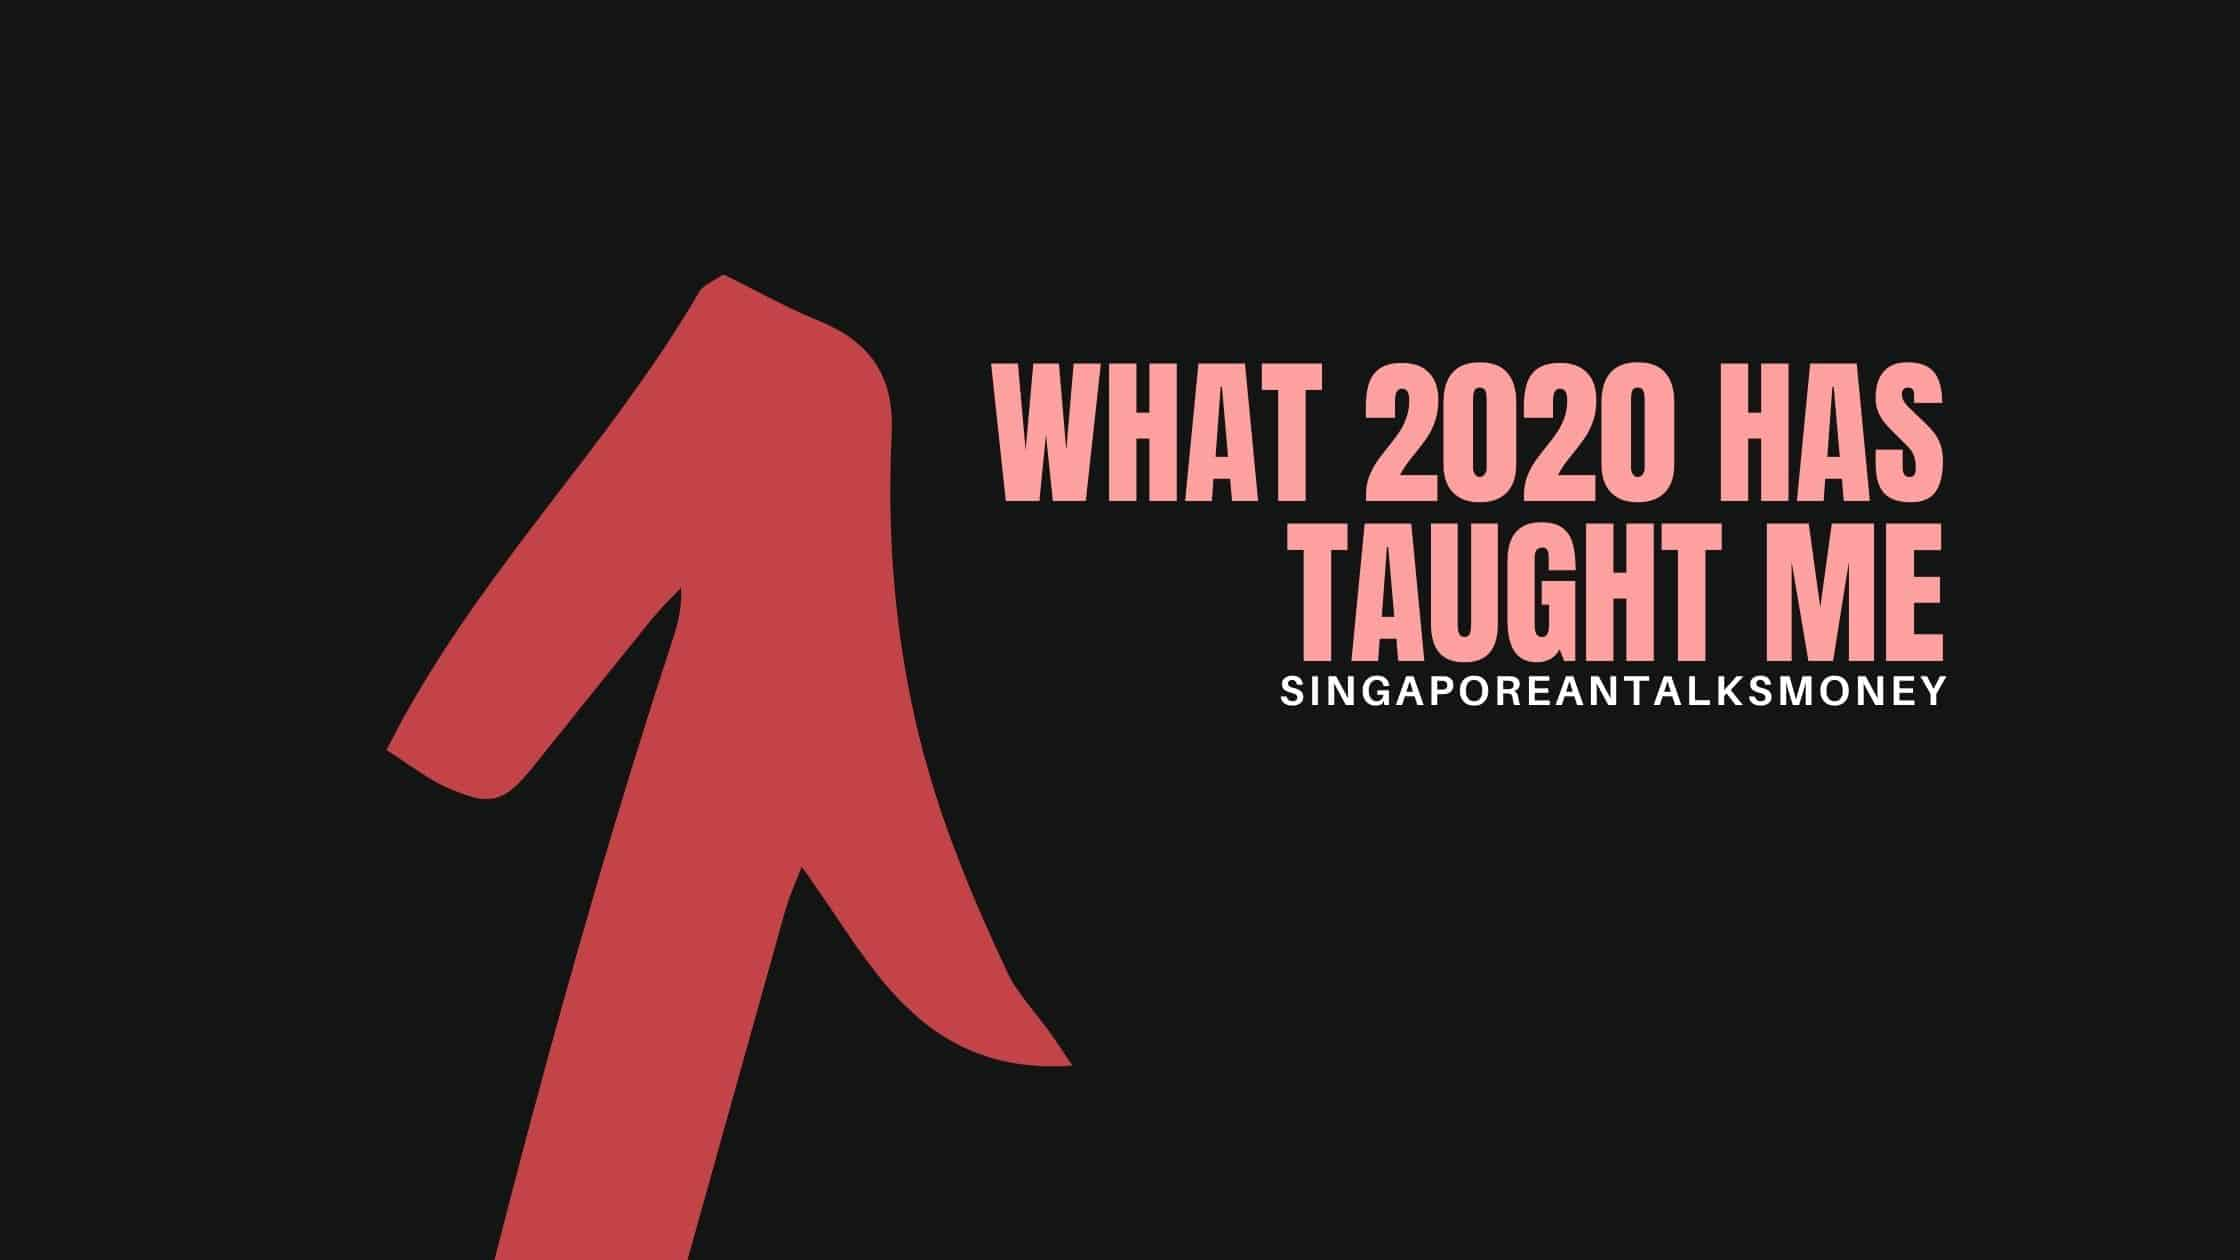 What 2020 has taught me?